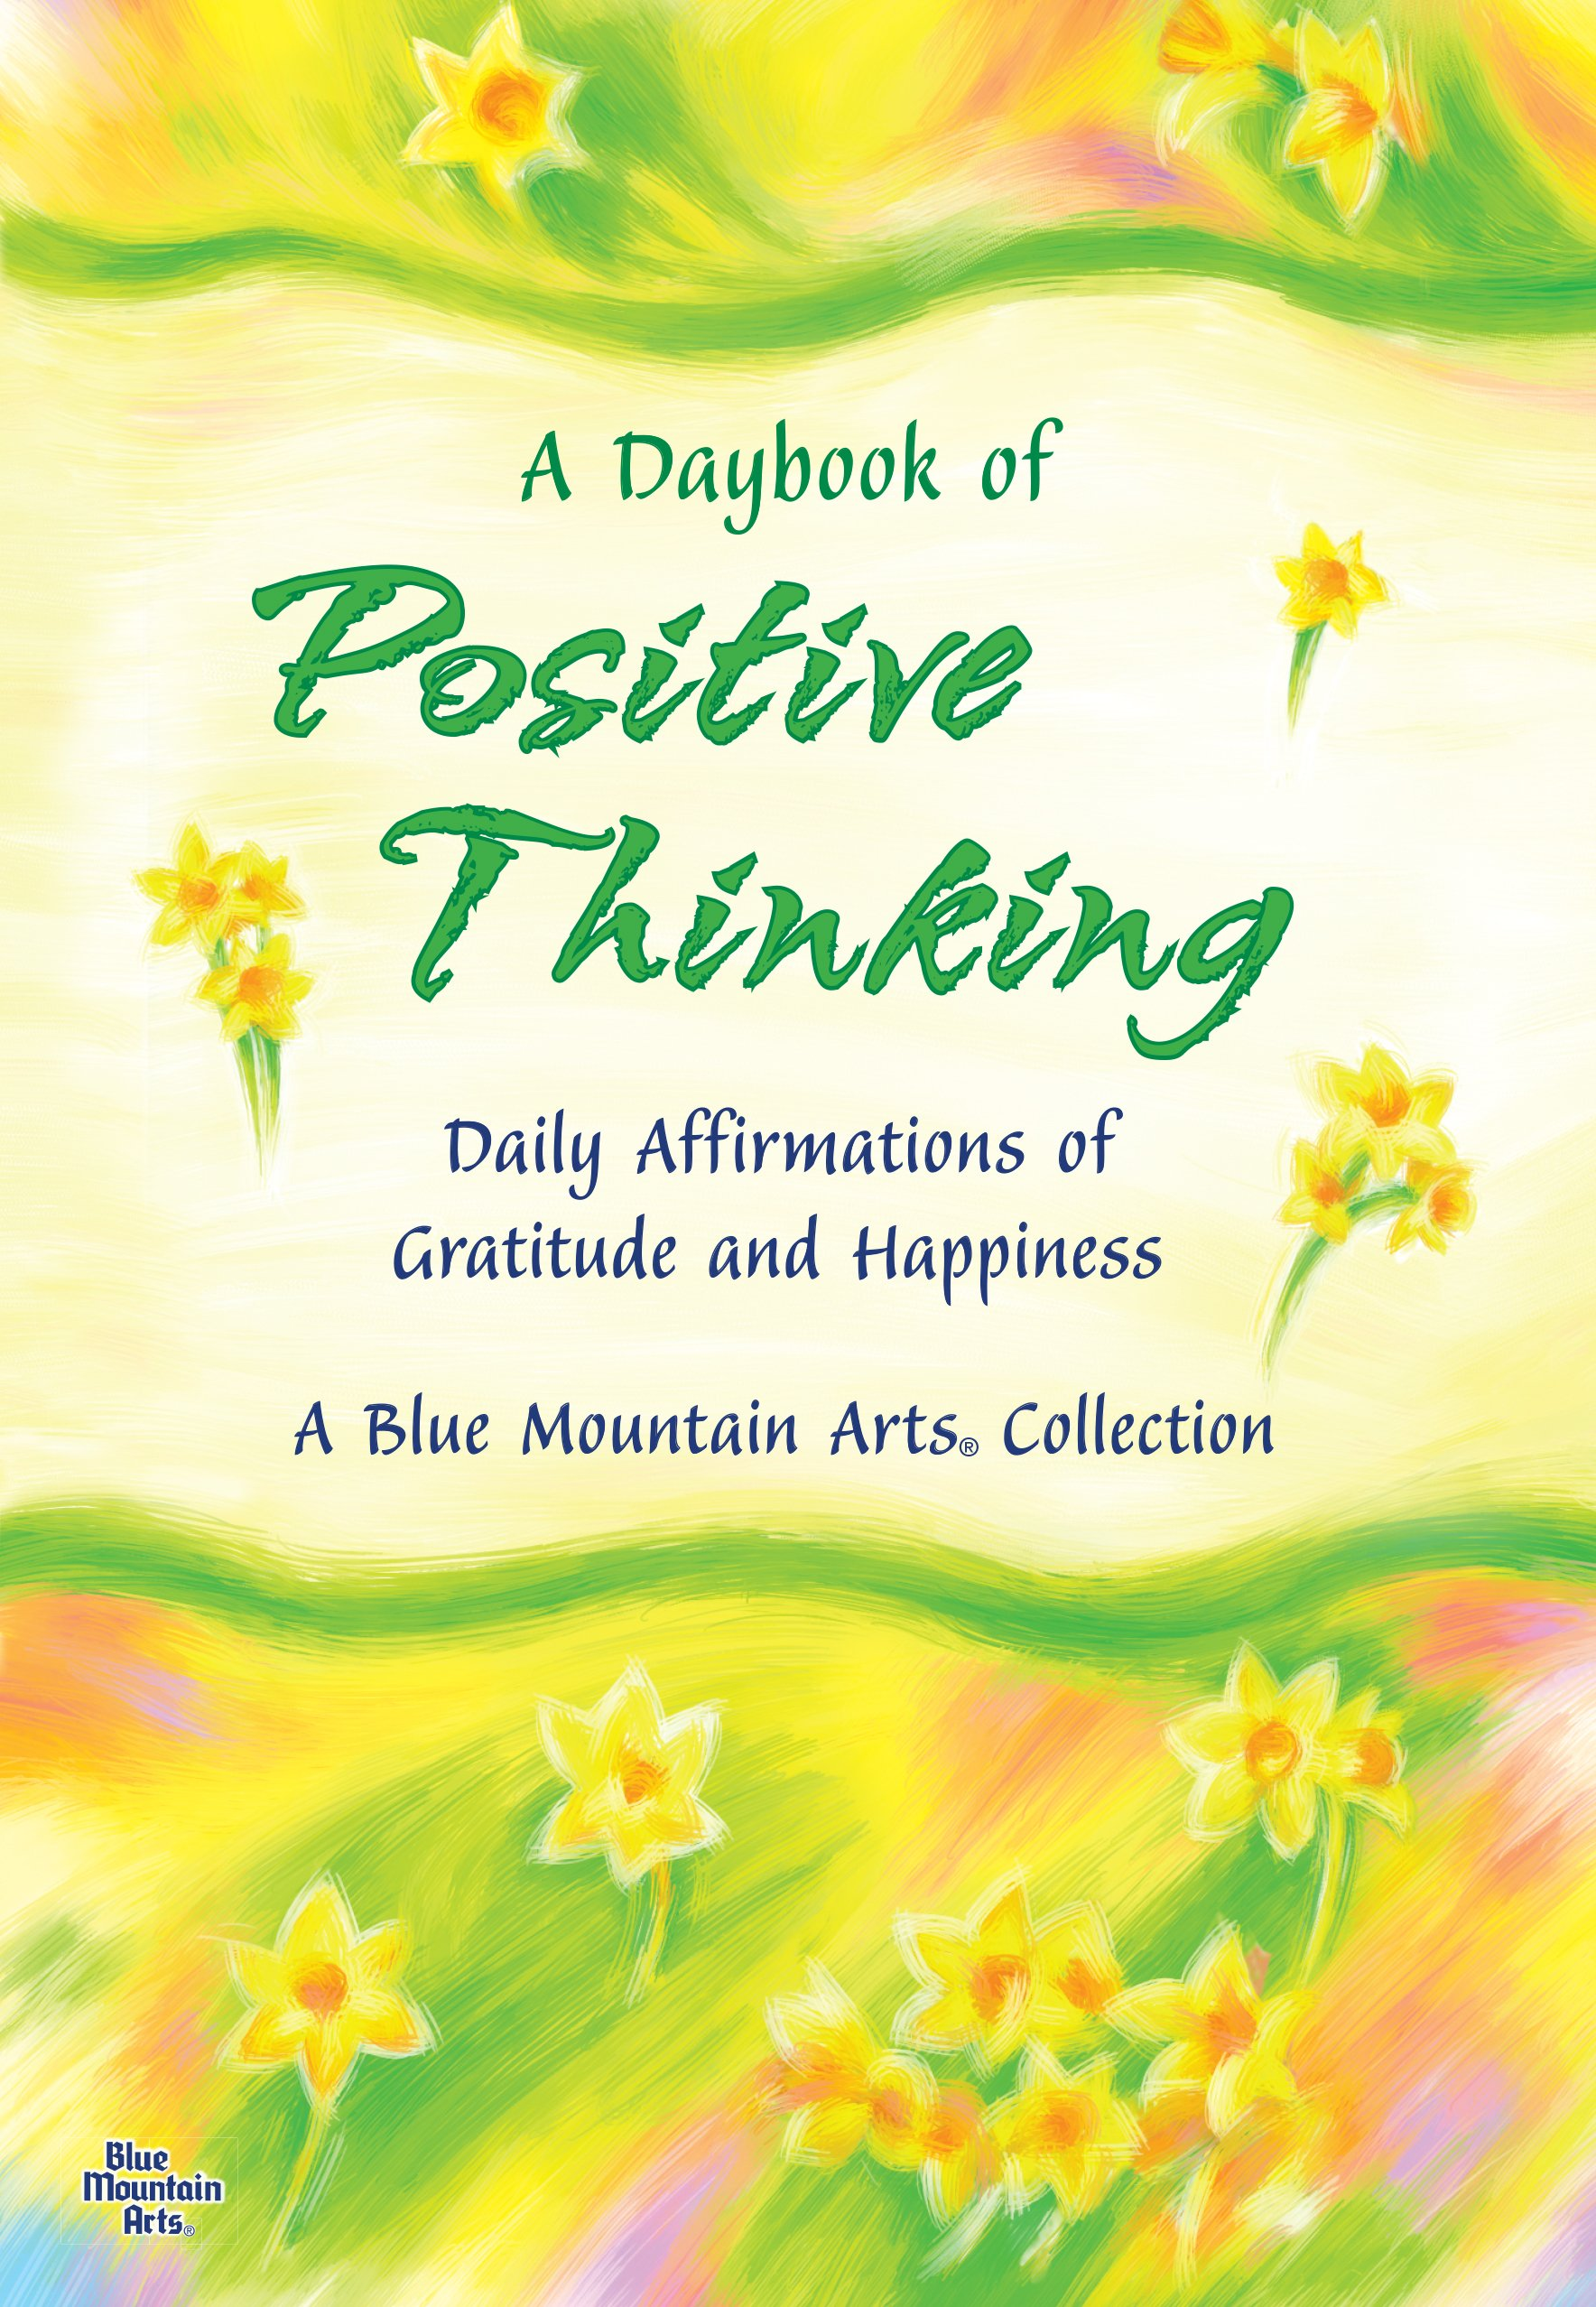 A Daybook of Positive Thinking Daily Affirmations of Gratitude